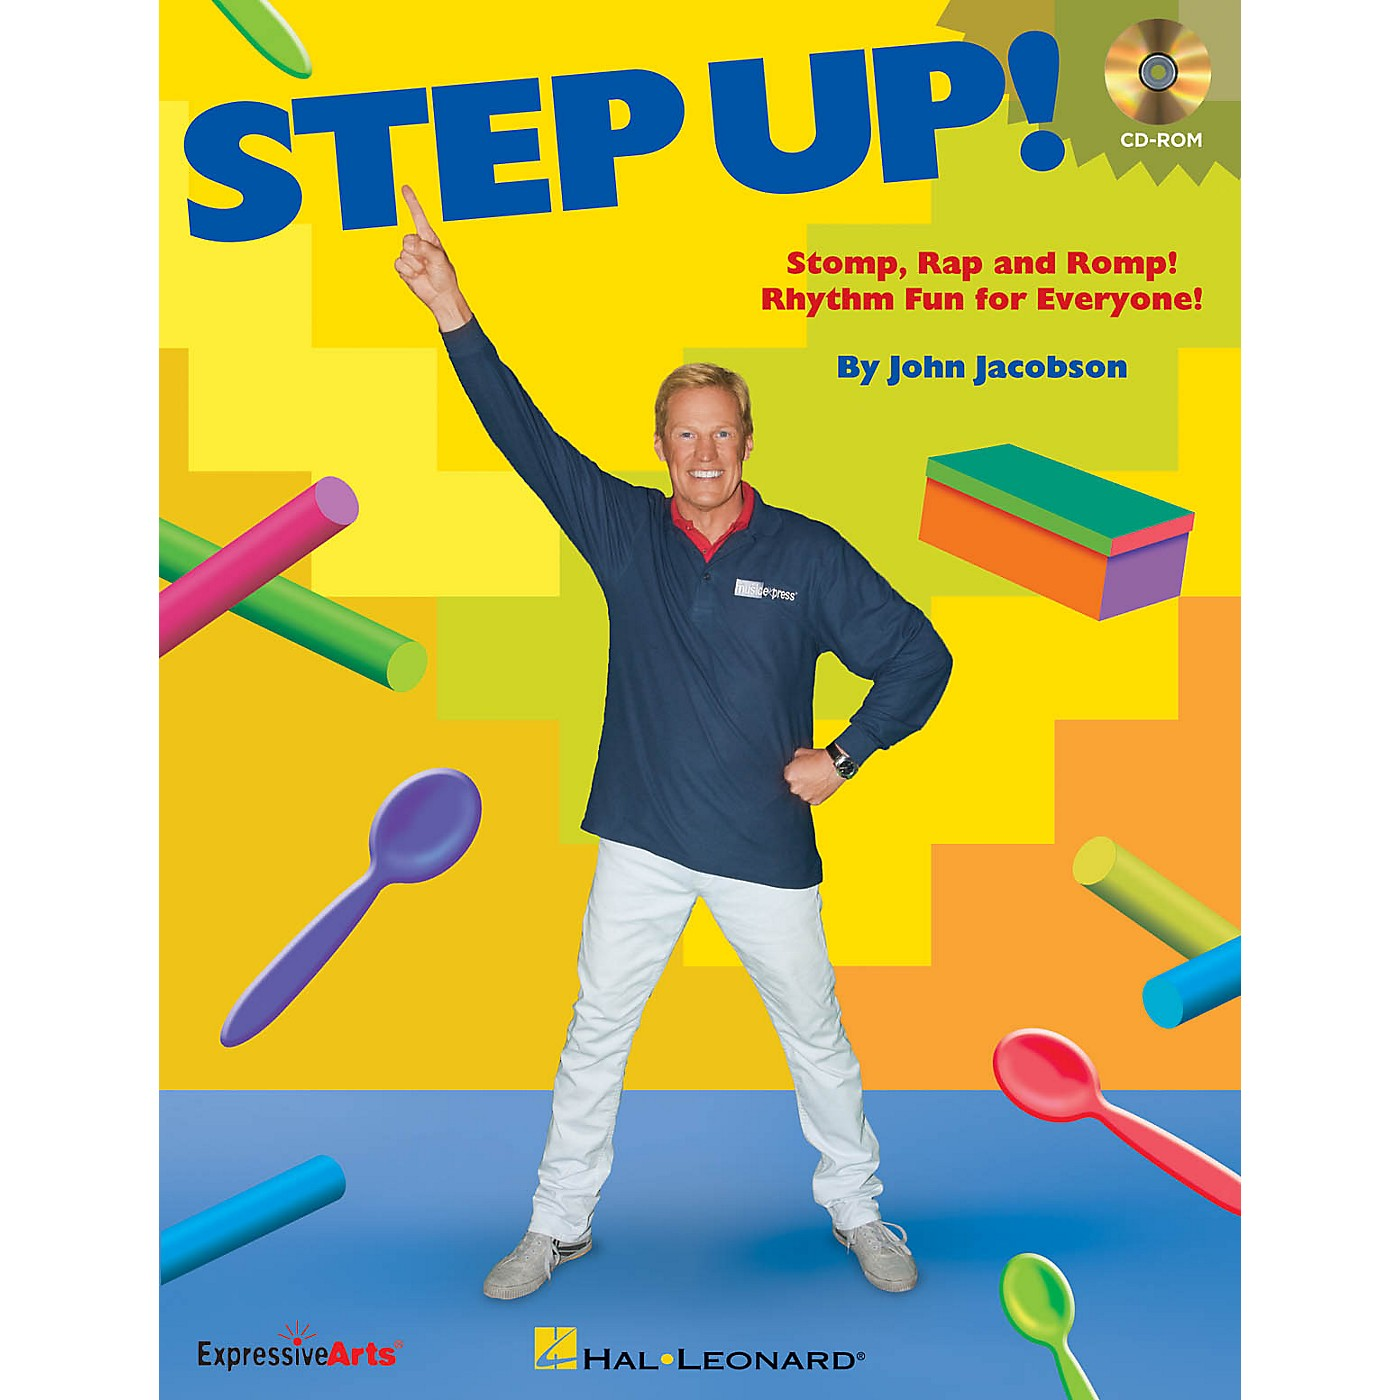 Hal Leonard Step Up! (Stomp, Rap and Romp! Rhythm Fun for Everyone!) CD-ROM Composed by John Jacobson thumbnail